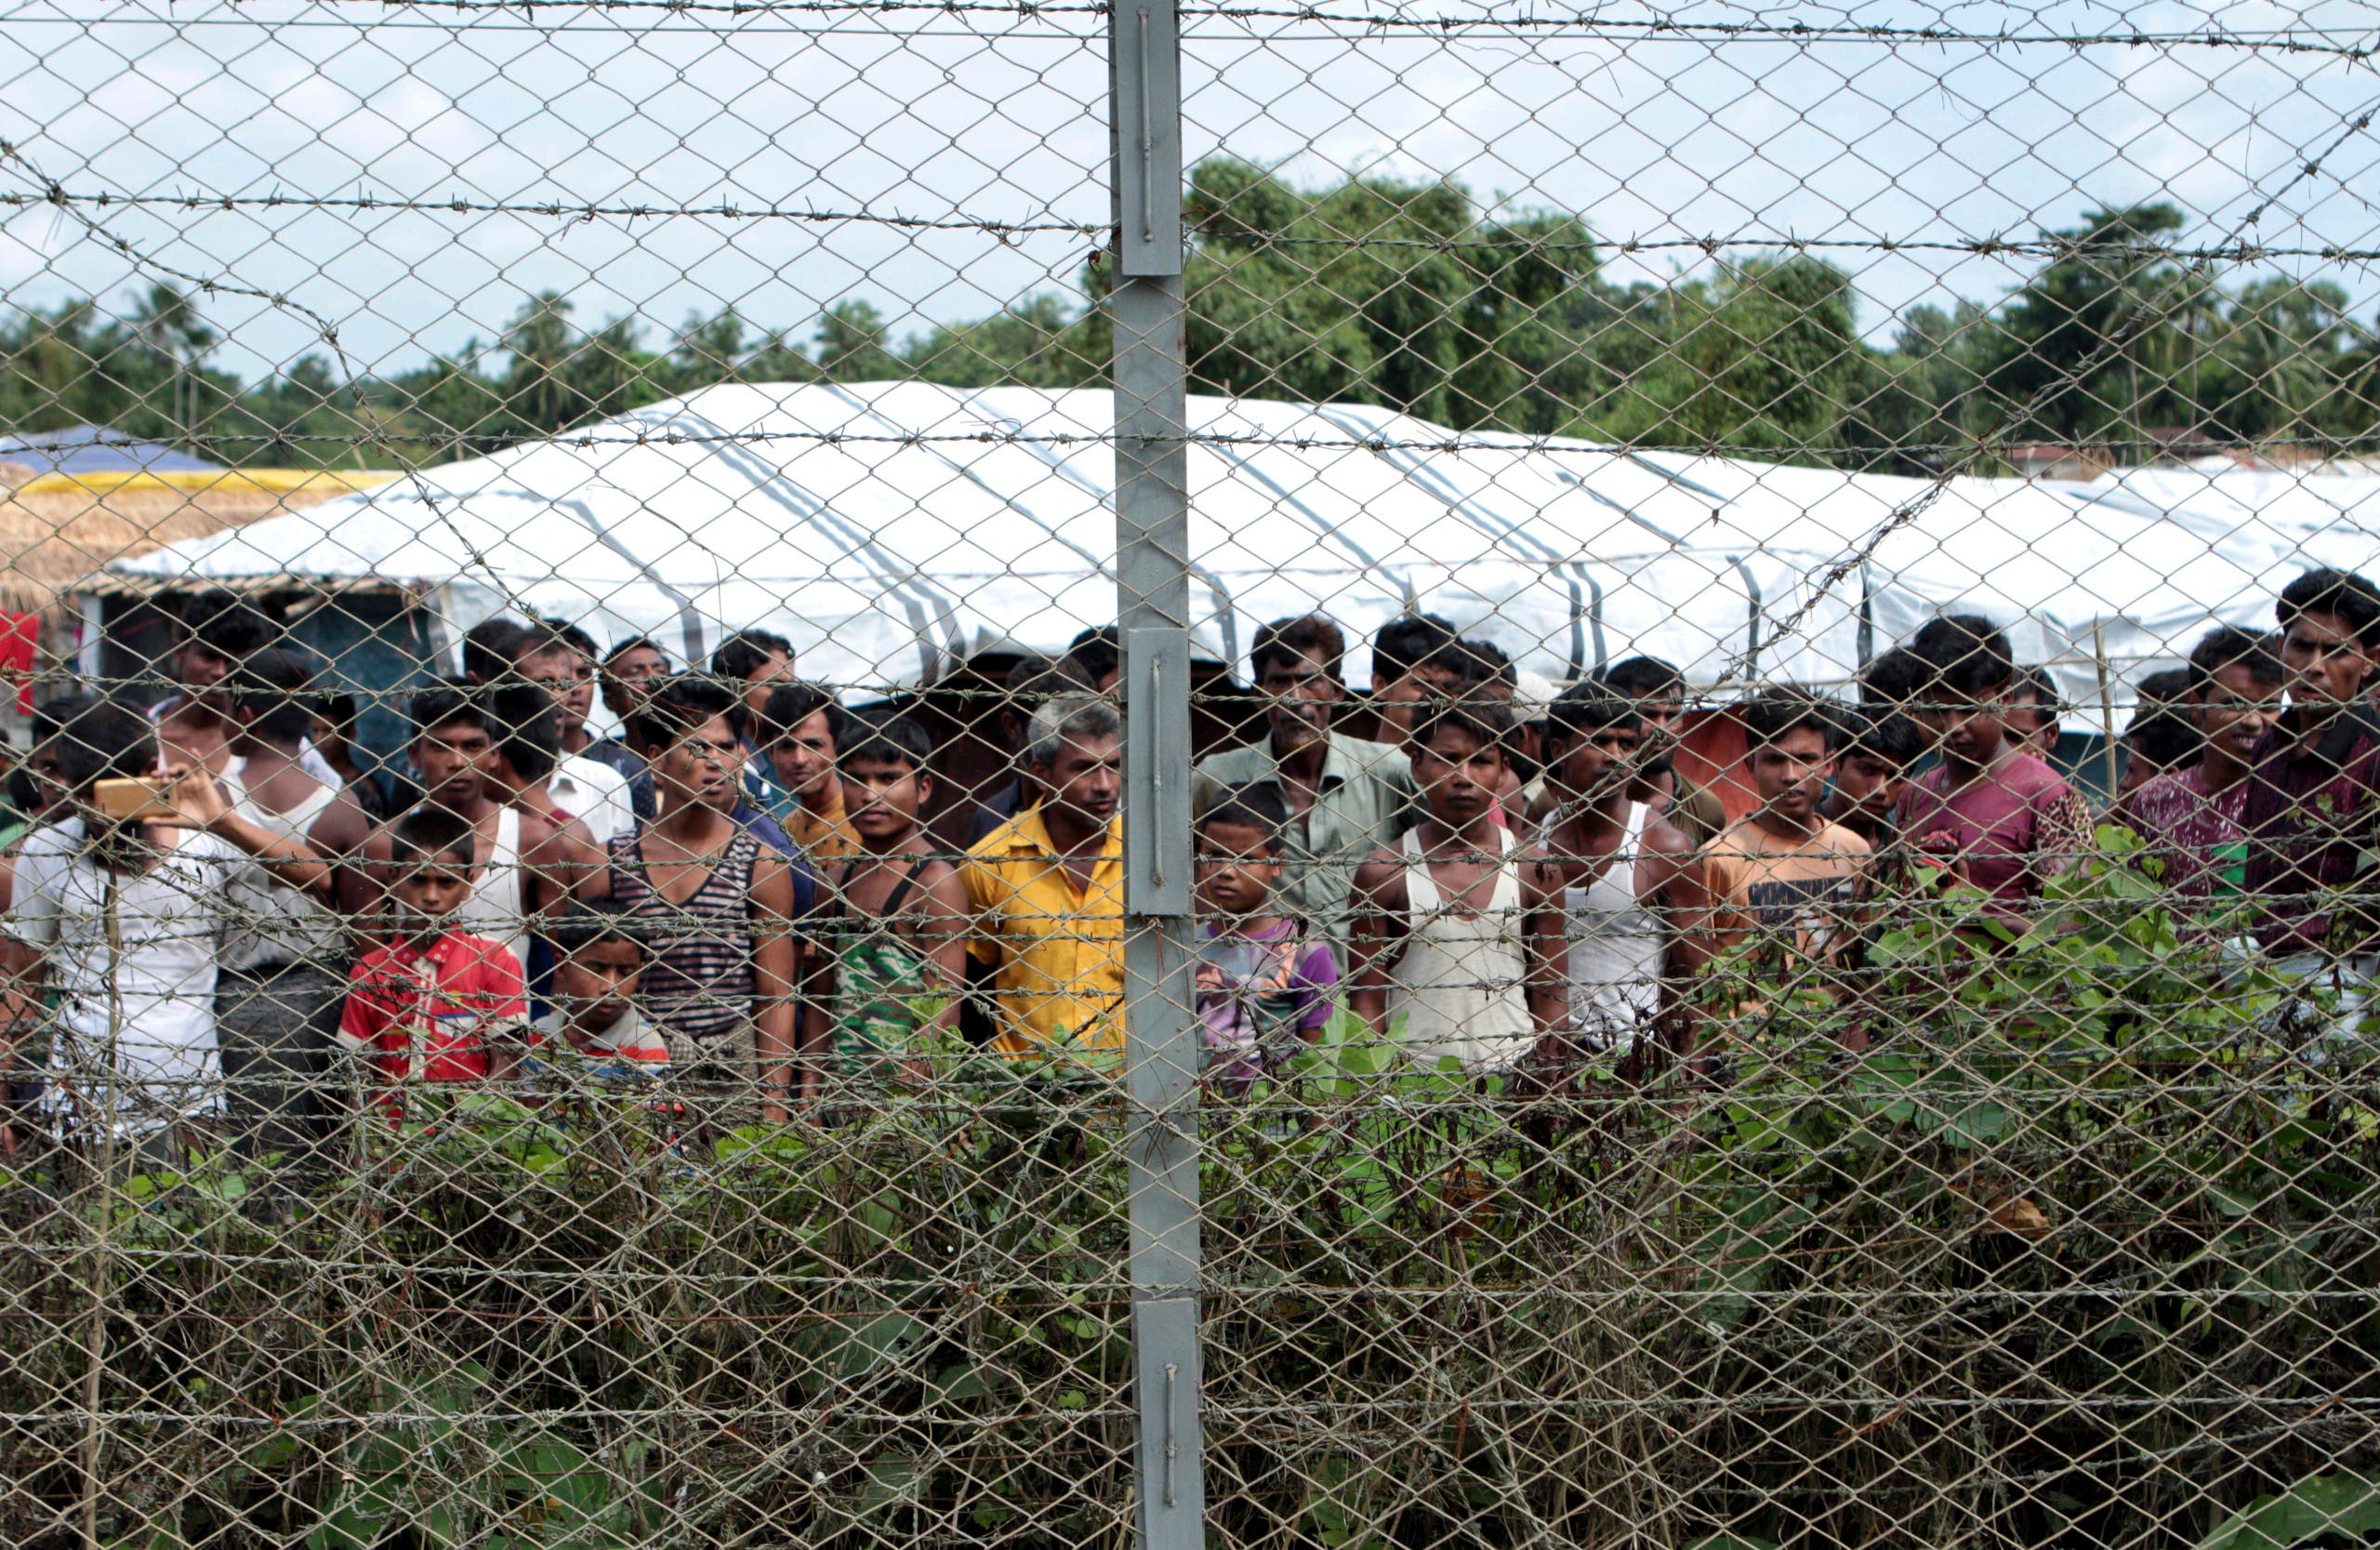 In this June 29, 2018, photo, Rohingya refugees gather near a fence during a government organized media tour, to a no-man's land between Myanmar and Bangladesh, near Taungpyolatyar village, Maung Daw, northern Rakhine State, Myanmar. (AP)